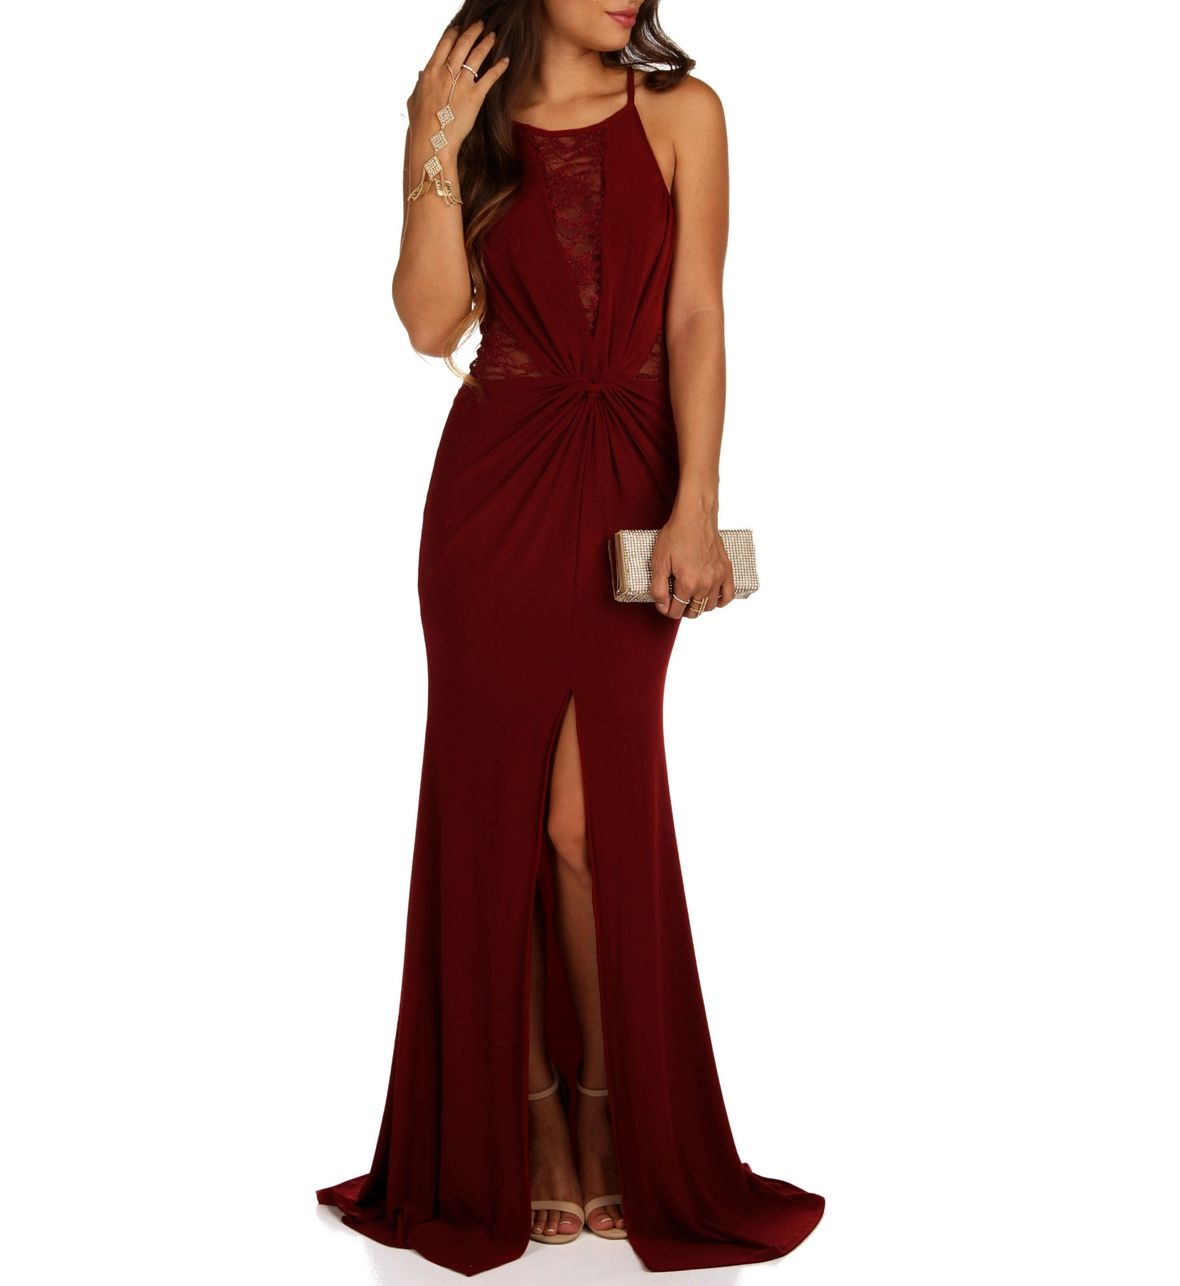 Preorder ruby burgundy homecoming dress at windsorstore prom